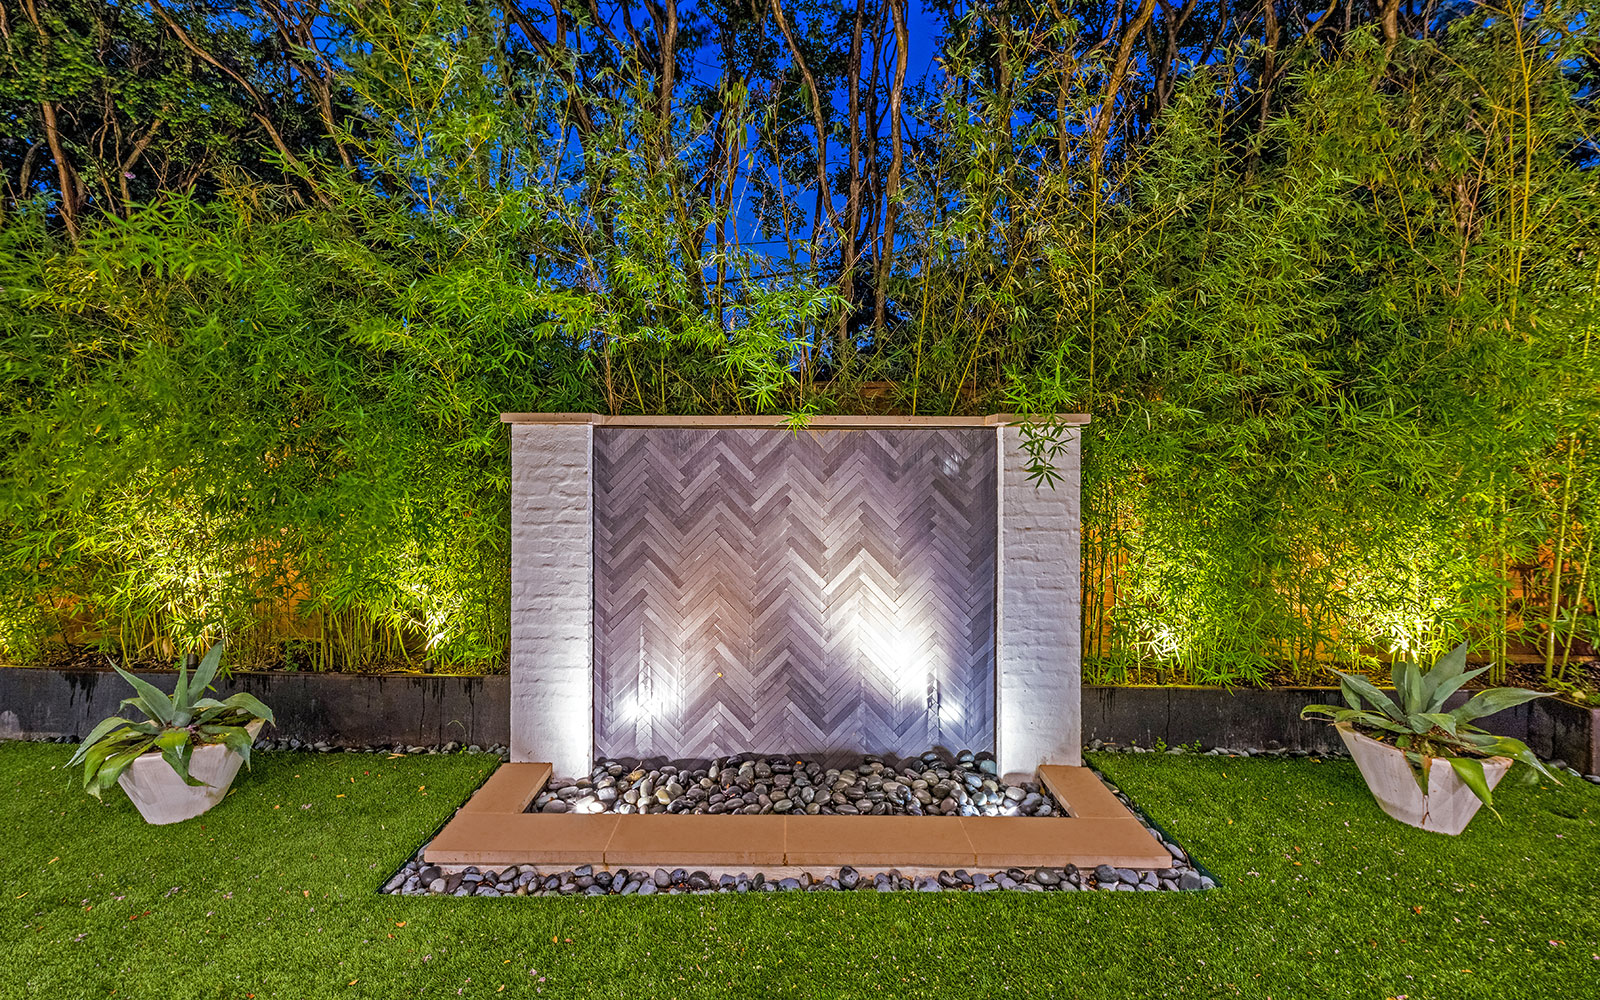 ddla-design-pemberton-modern-rear-wall-fountain.jpg